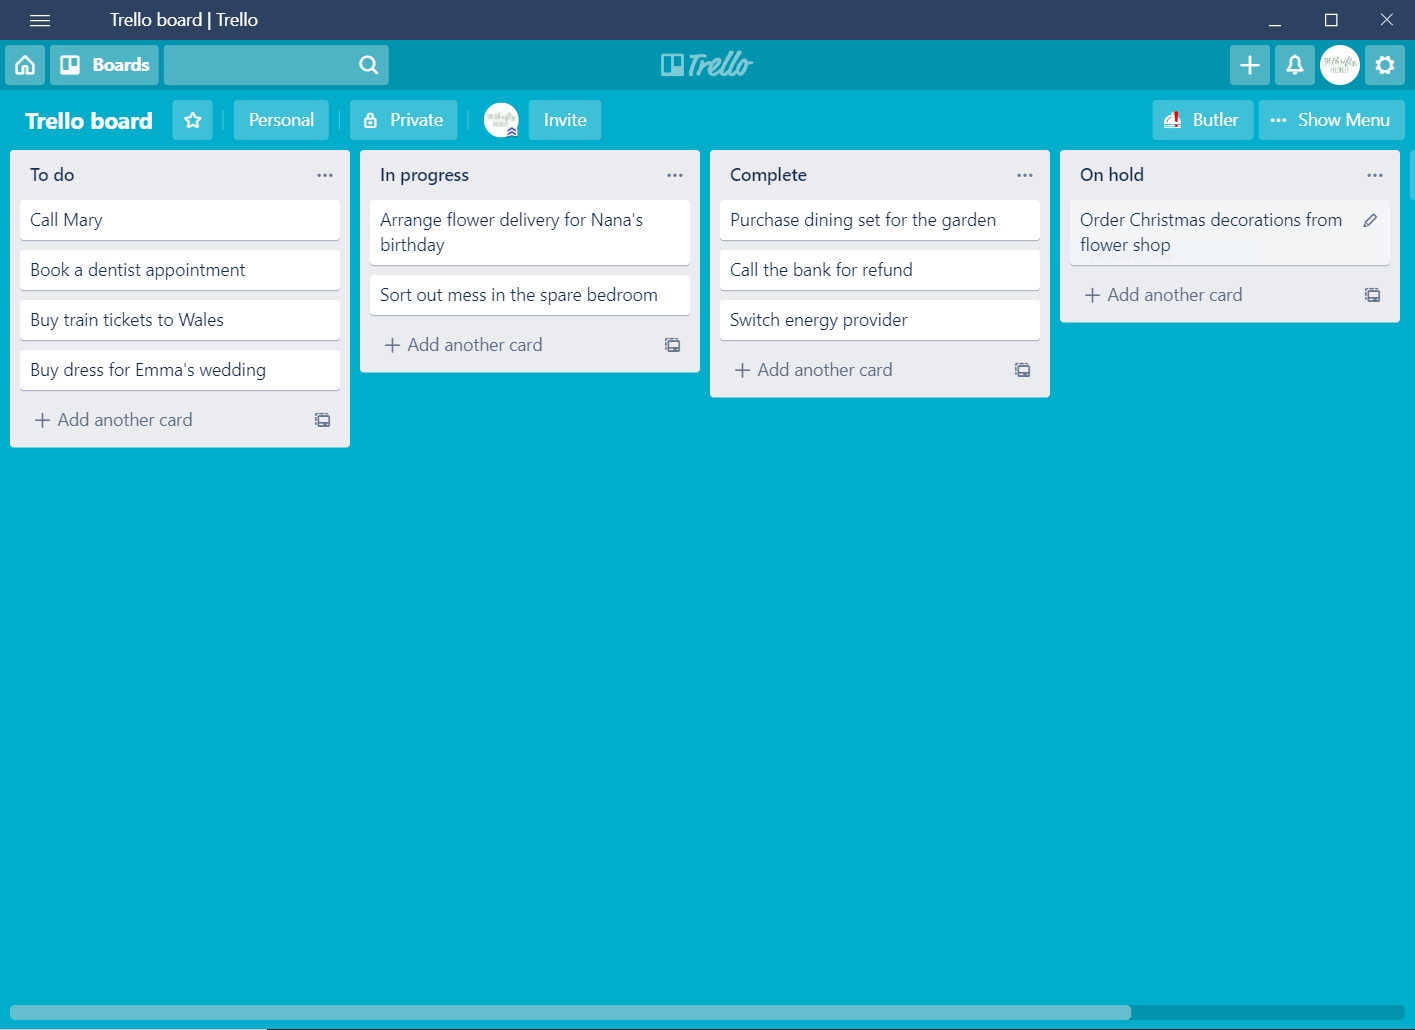 how to be organized with a trello board